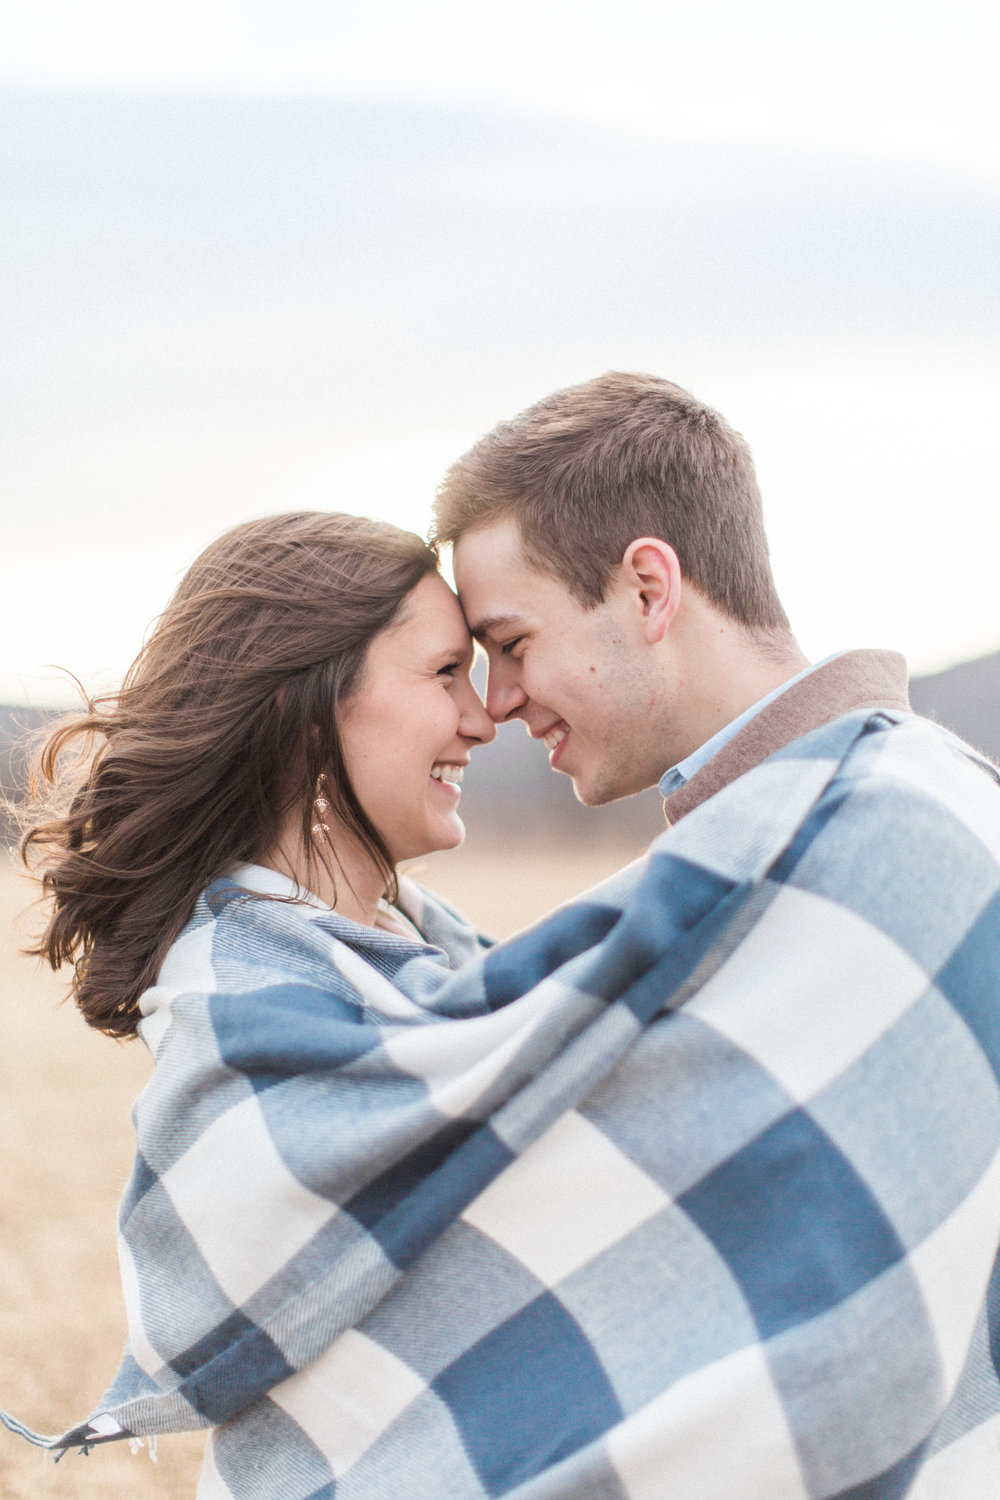 Abigail_Jill_Photography_Maryland_Engagement_Farm_Emily_Justin75.jpg